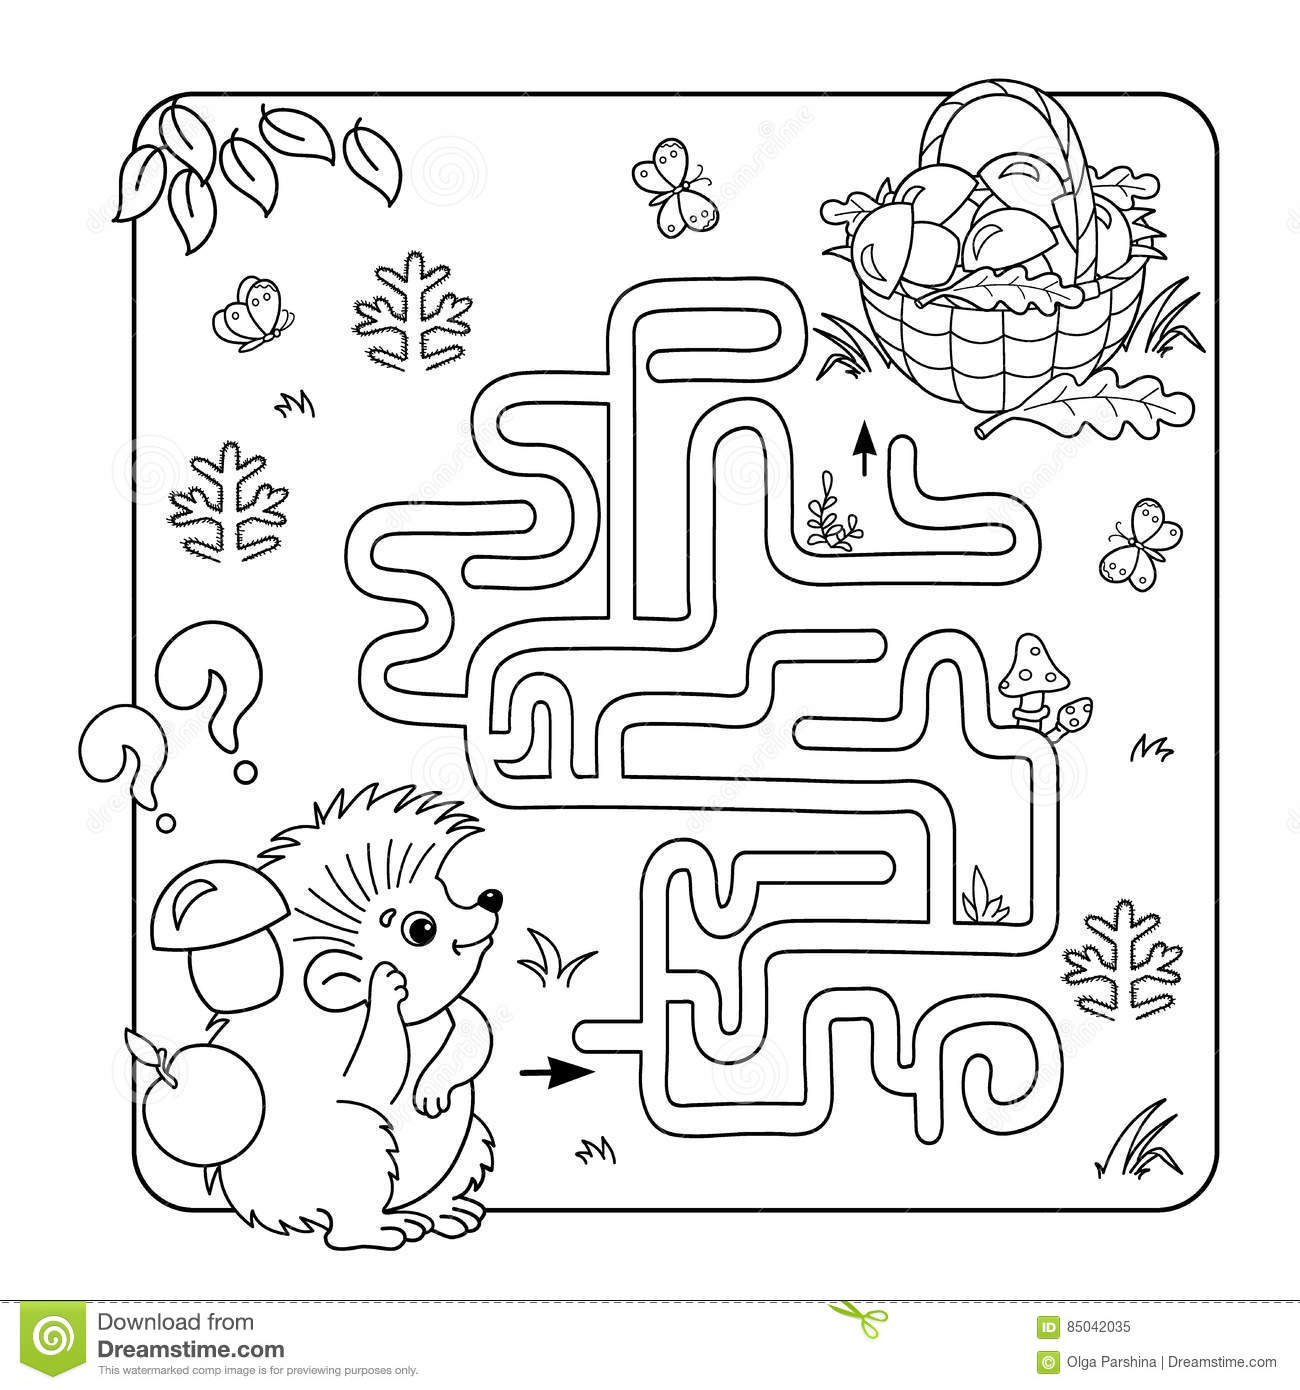 Education Maze Or Labyrinth Game For Preschool Children Puzzle Stock Vector